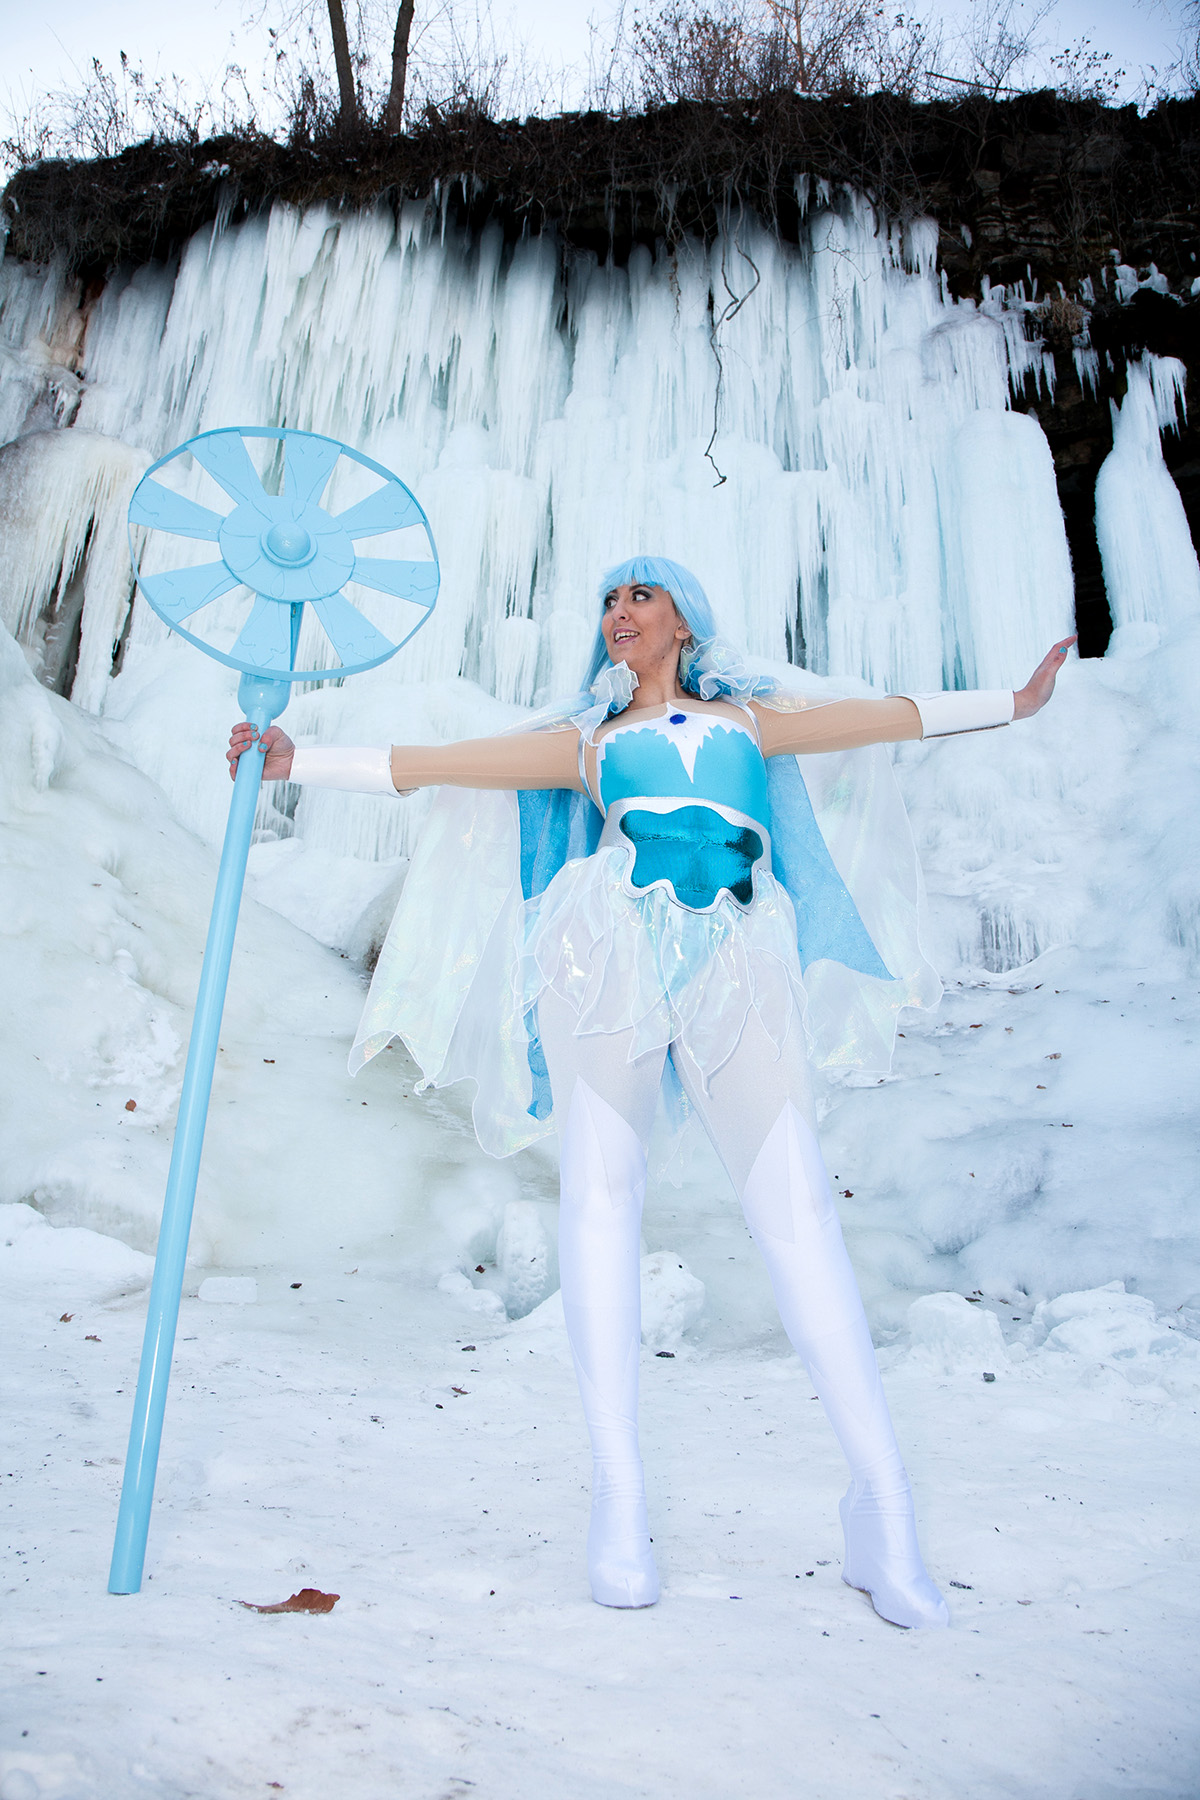 A cosplayer dressed as Frosta from She-Ra. She is pictured in front of a wall of dripping ice.